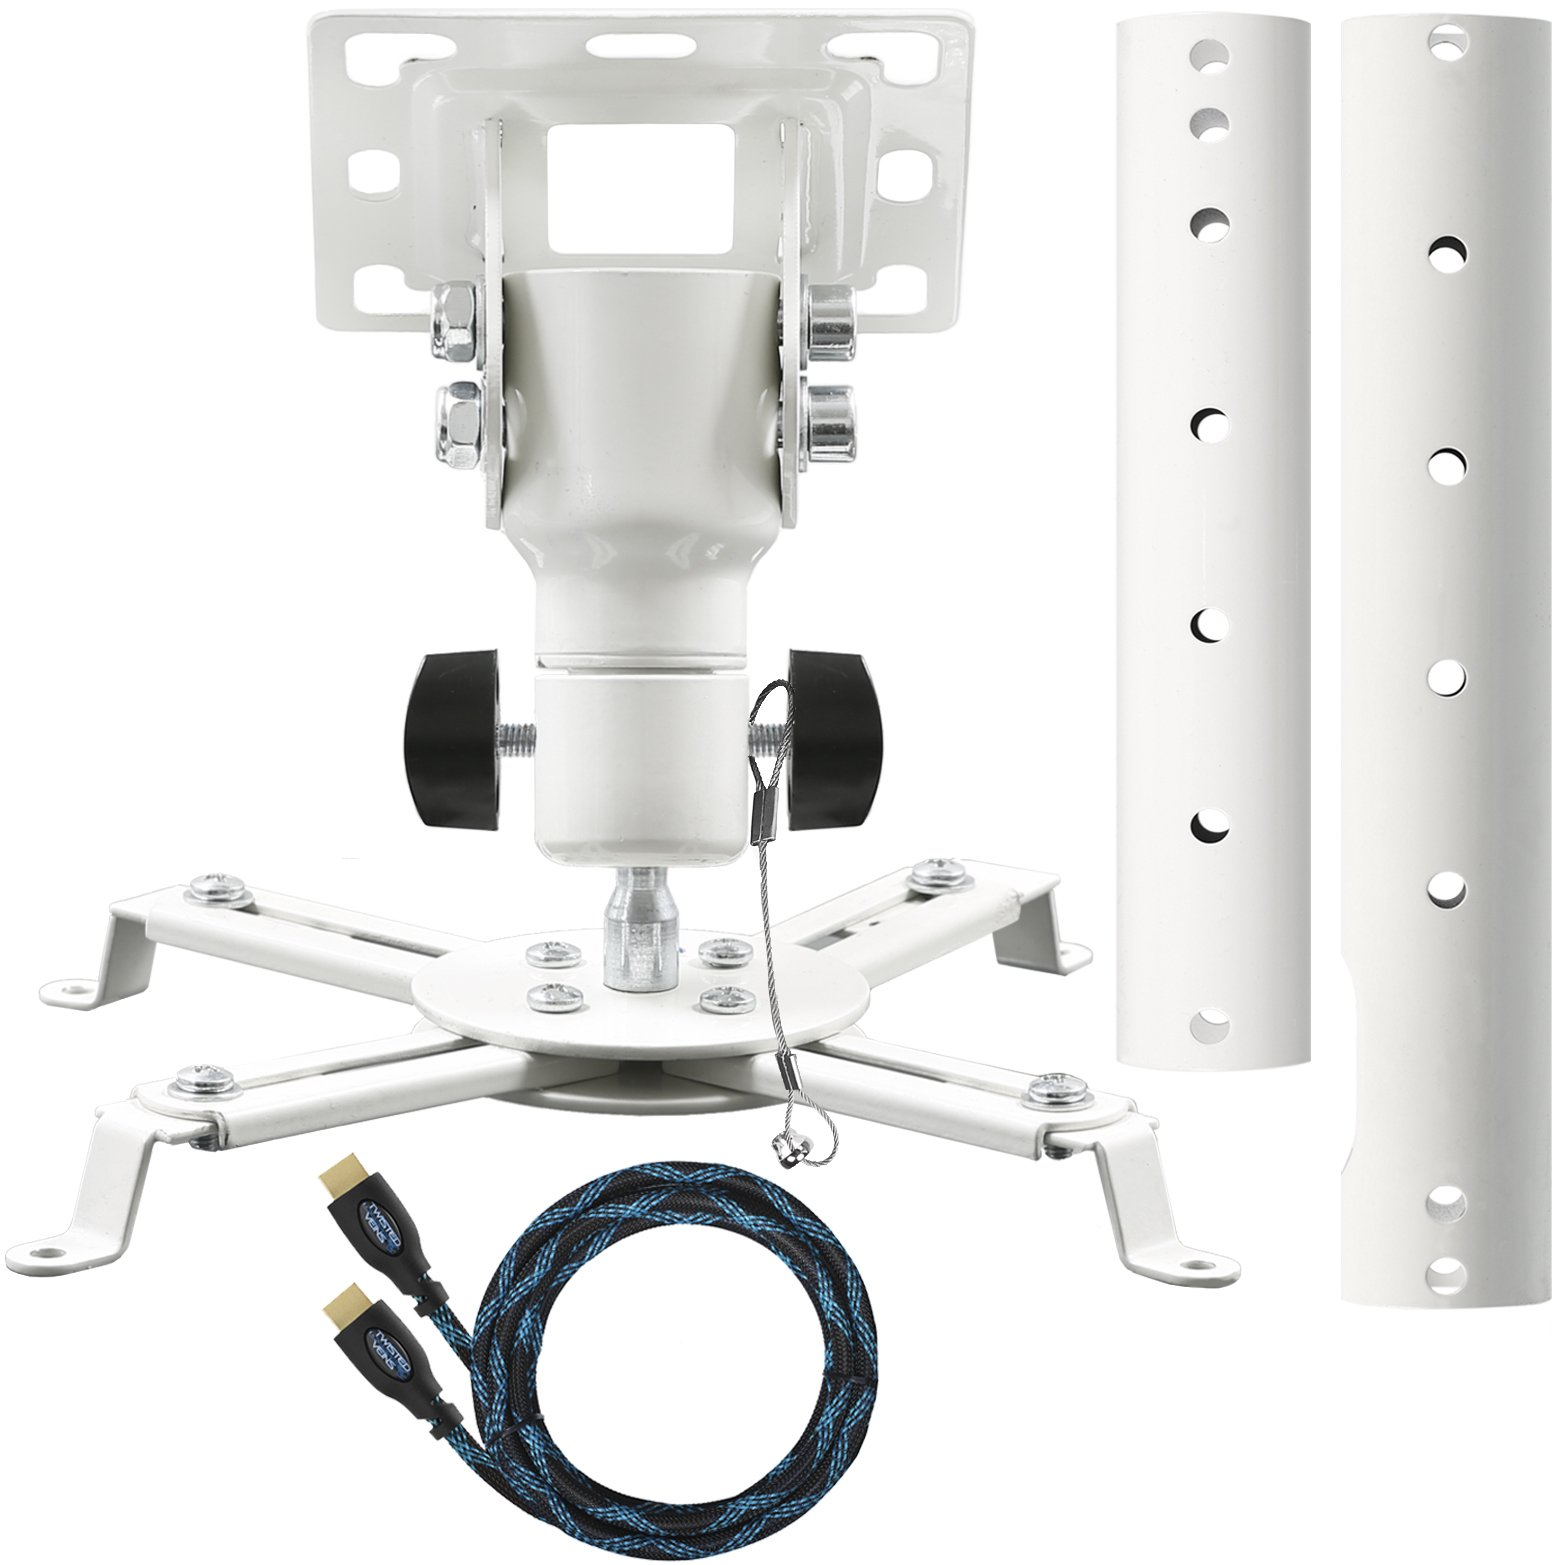 Cheetah Mounts APMFW Universal Projector Ceiling Mount. Includes an Adjustable Extension Pole and Twisted Veins 15'' HDMI Cable